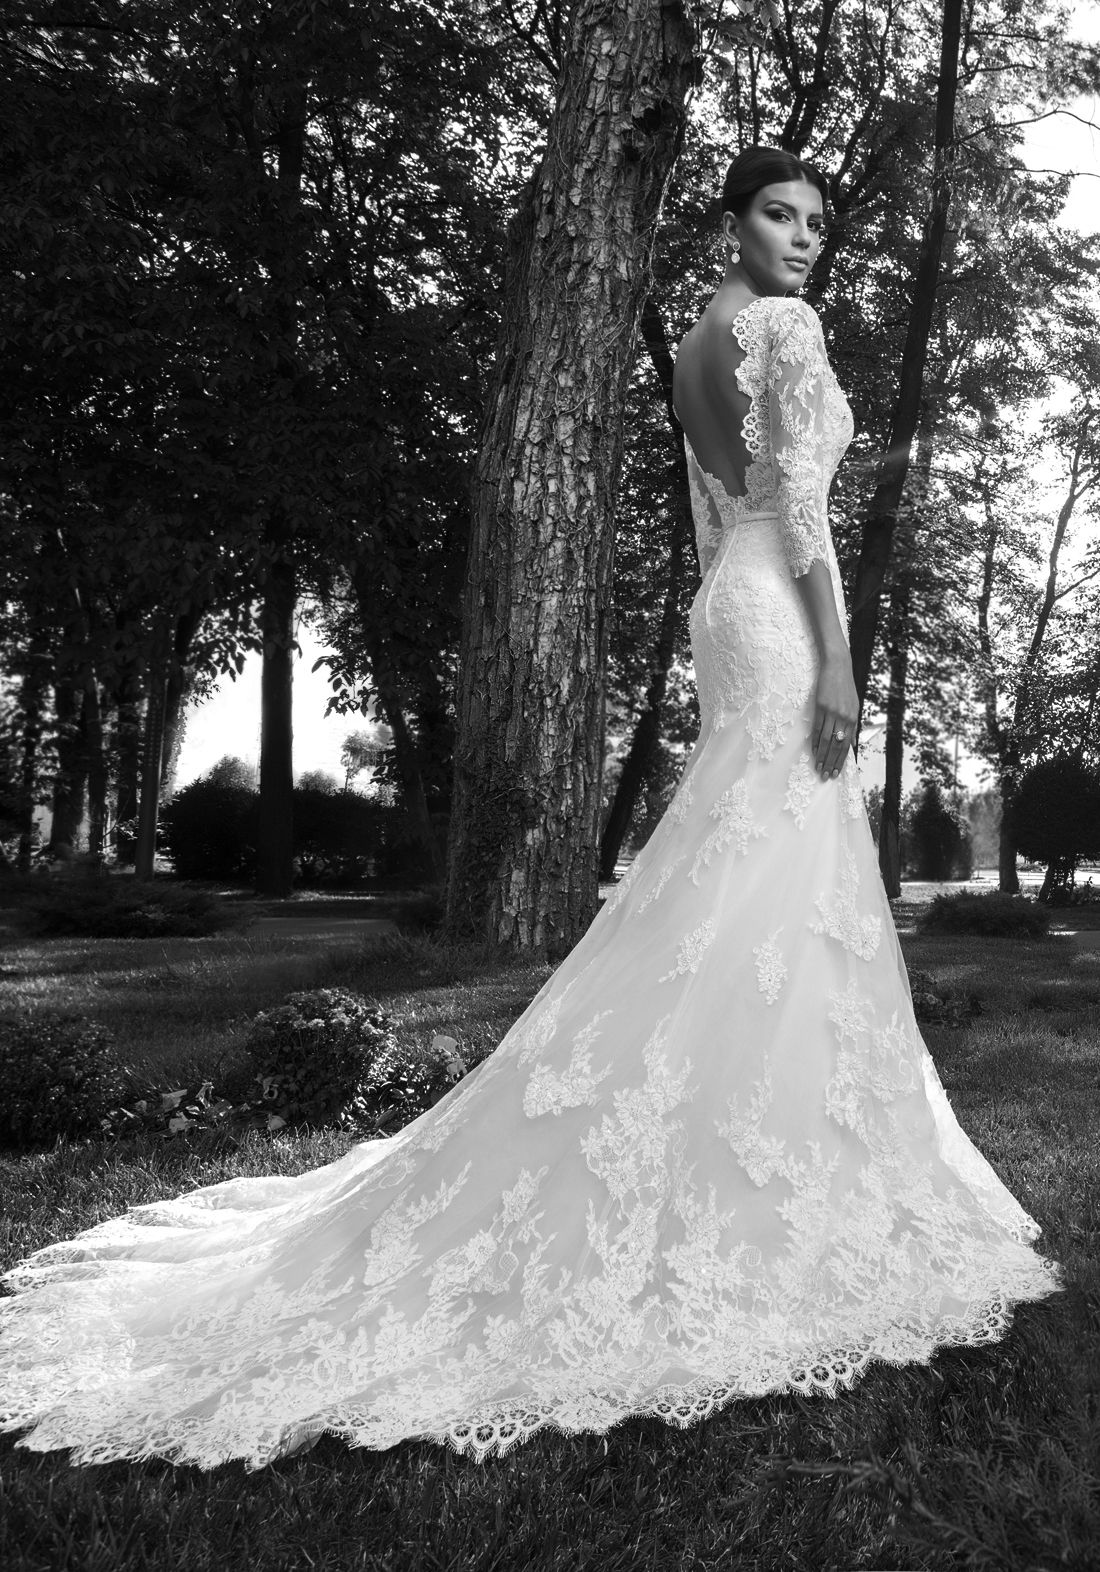 Rose elegant mermaid wedding dress with a stunning open back long